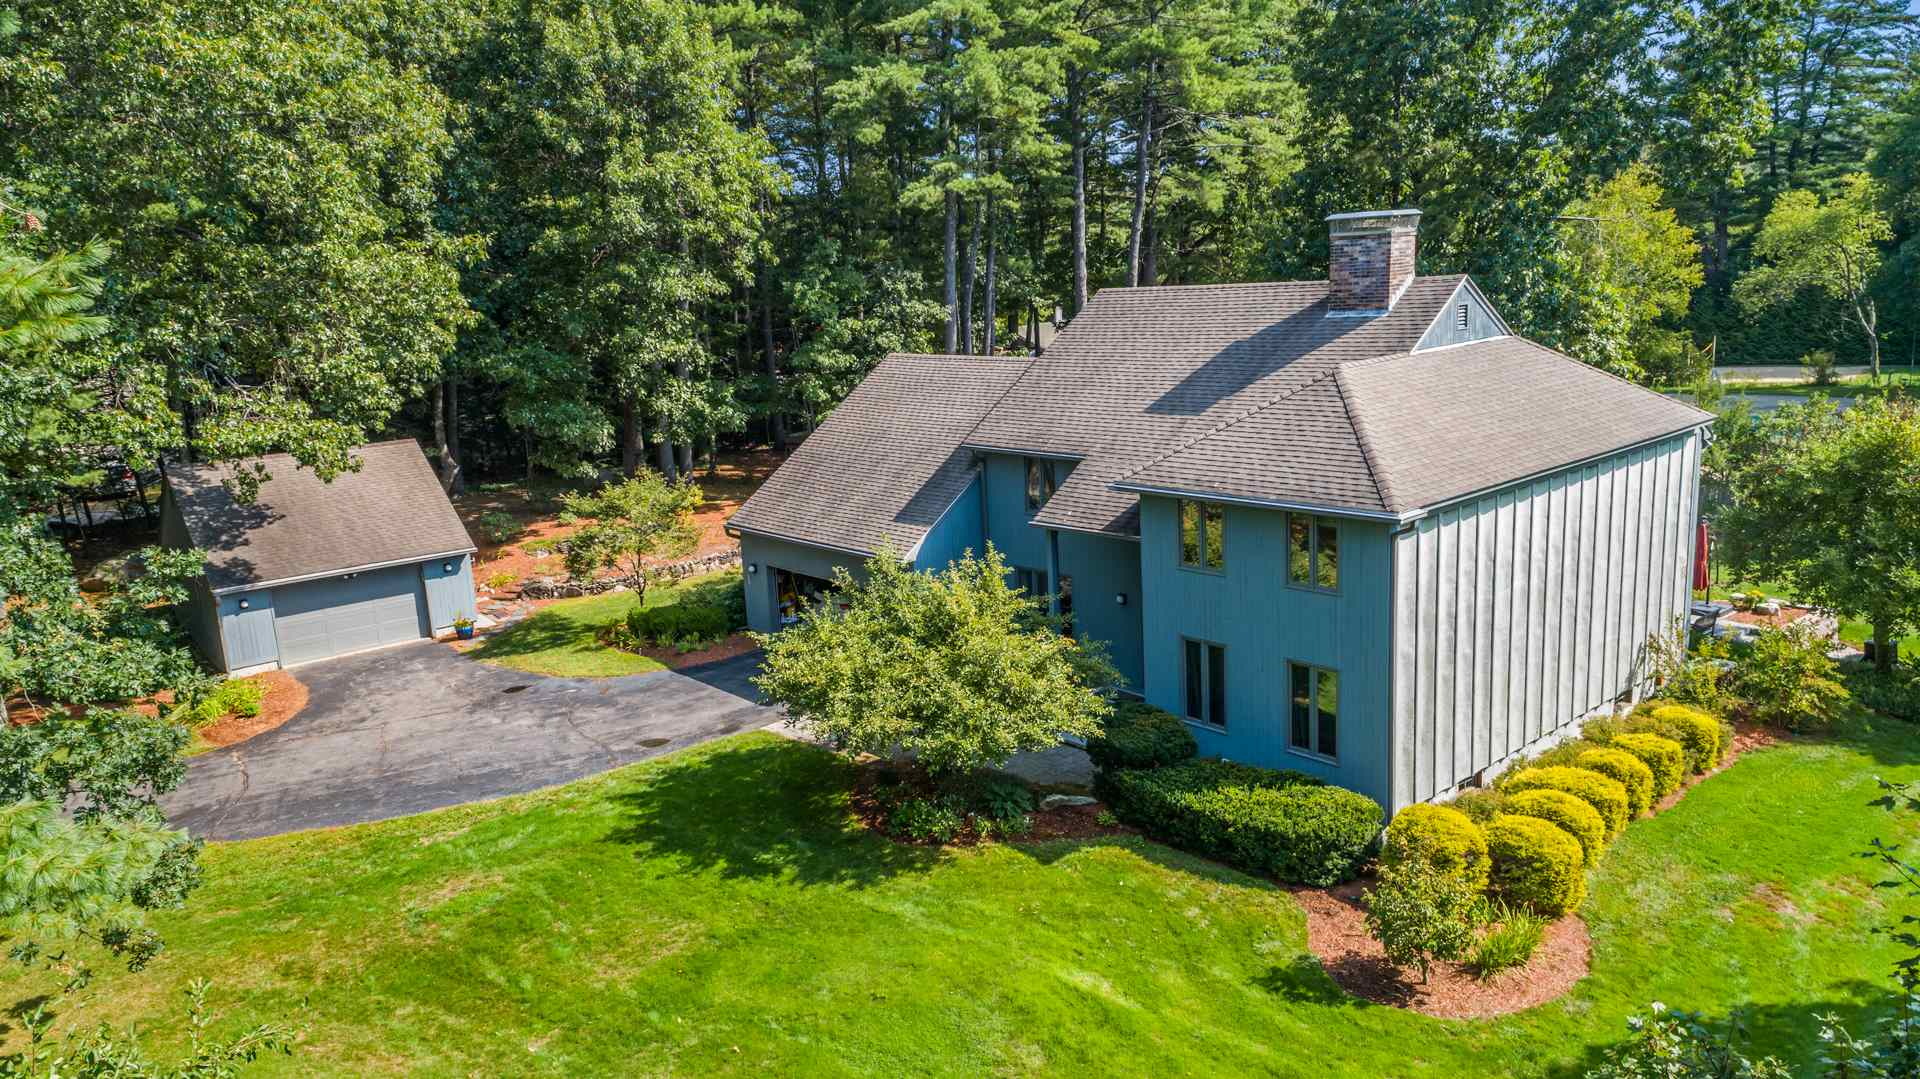 MLS 4828003: 15 Martingale Road, Amherst NH